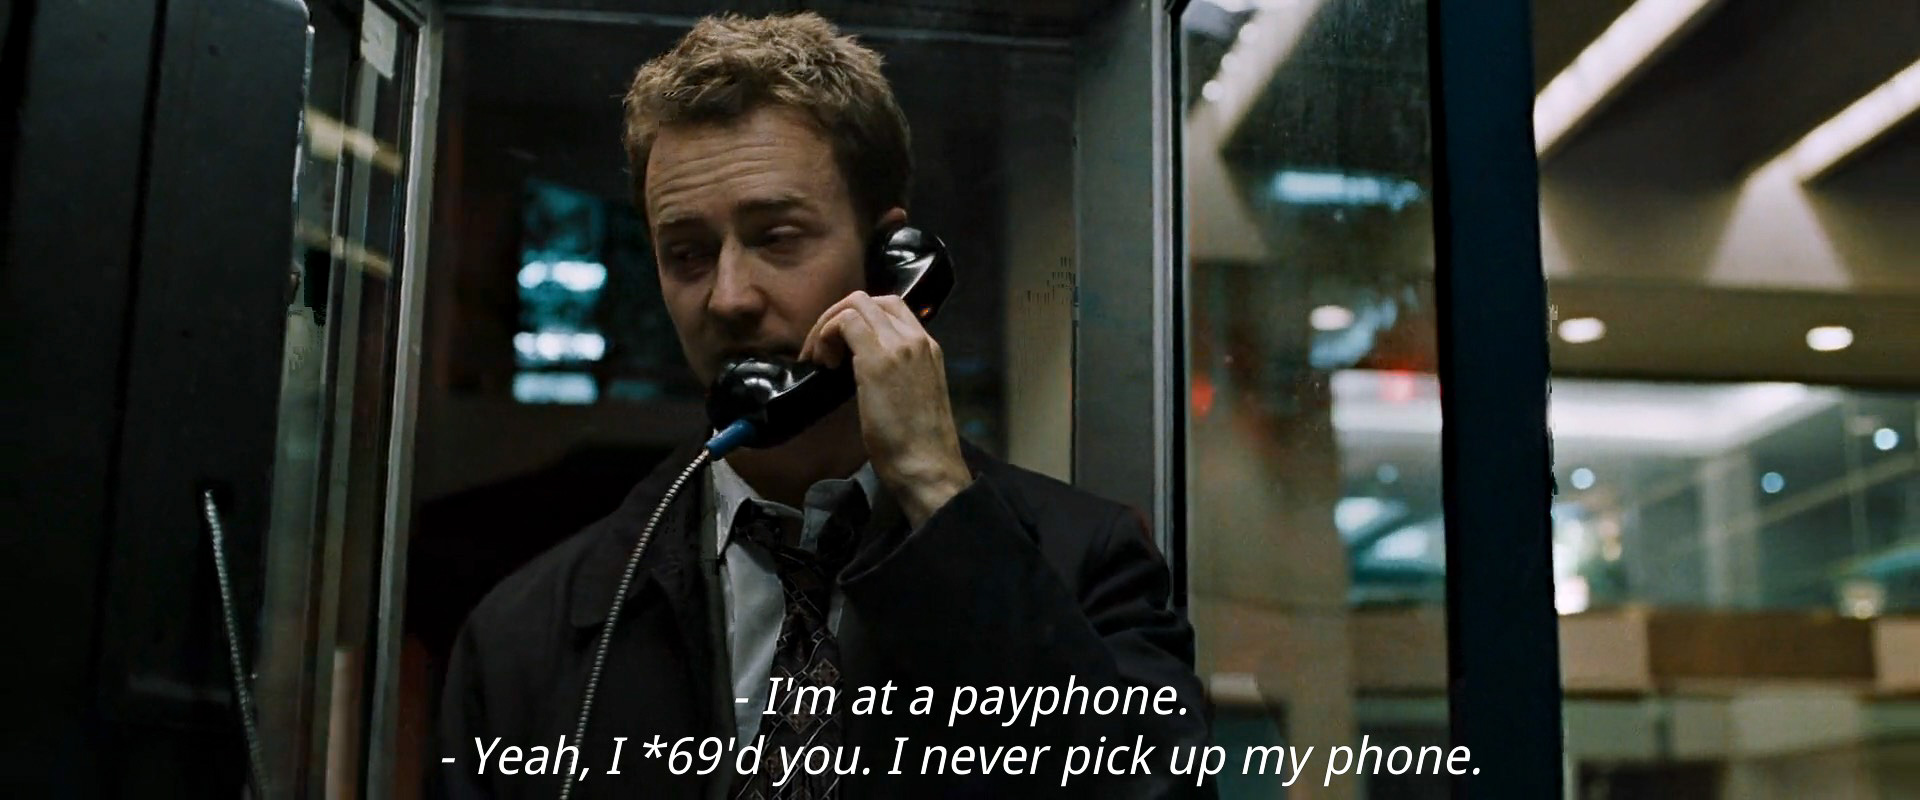 fight club cinematography life lessons-10.jpg